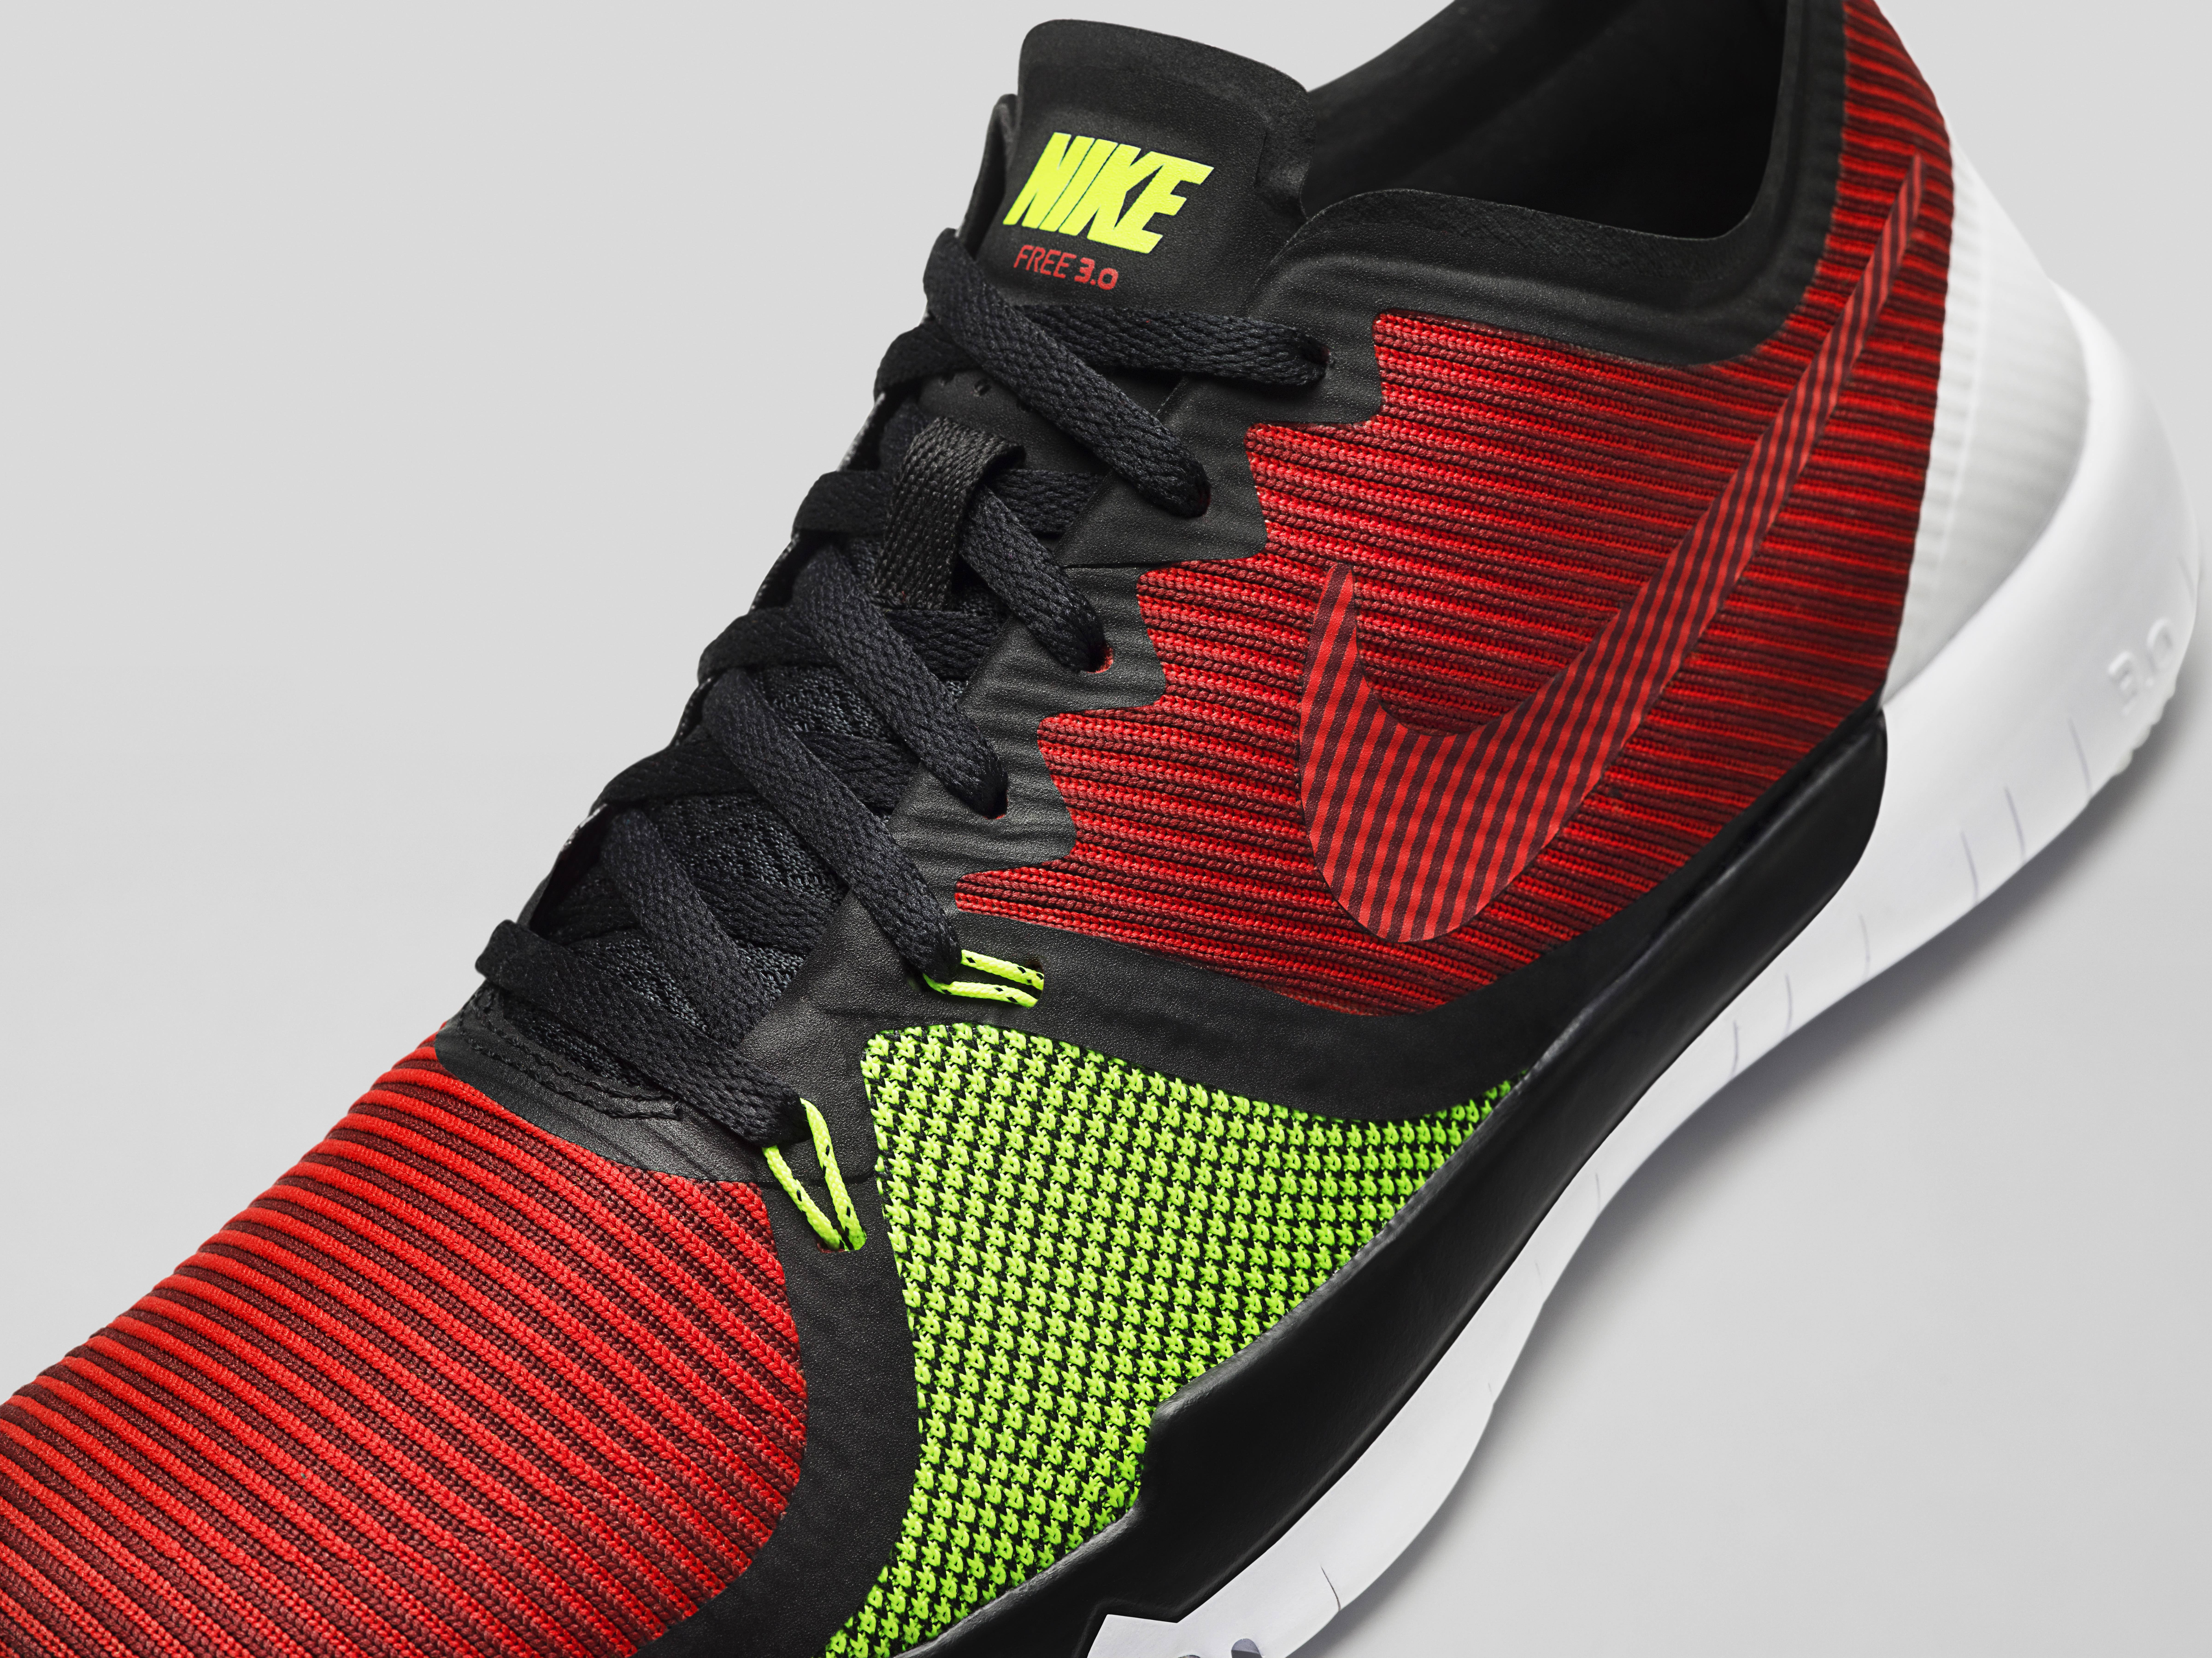 nike free 3.0 training shoes